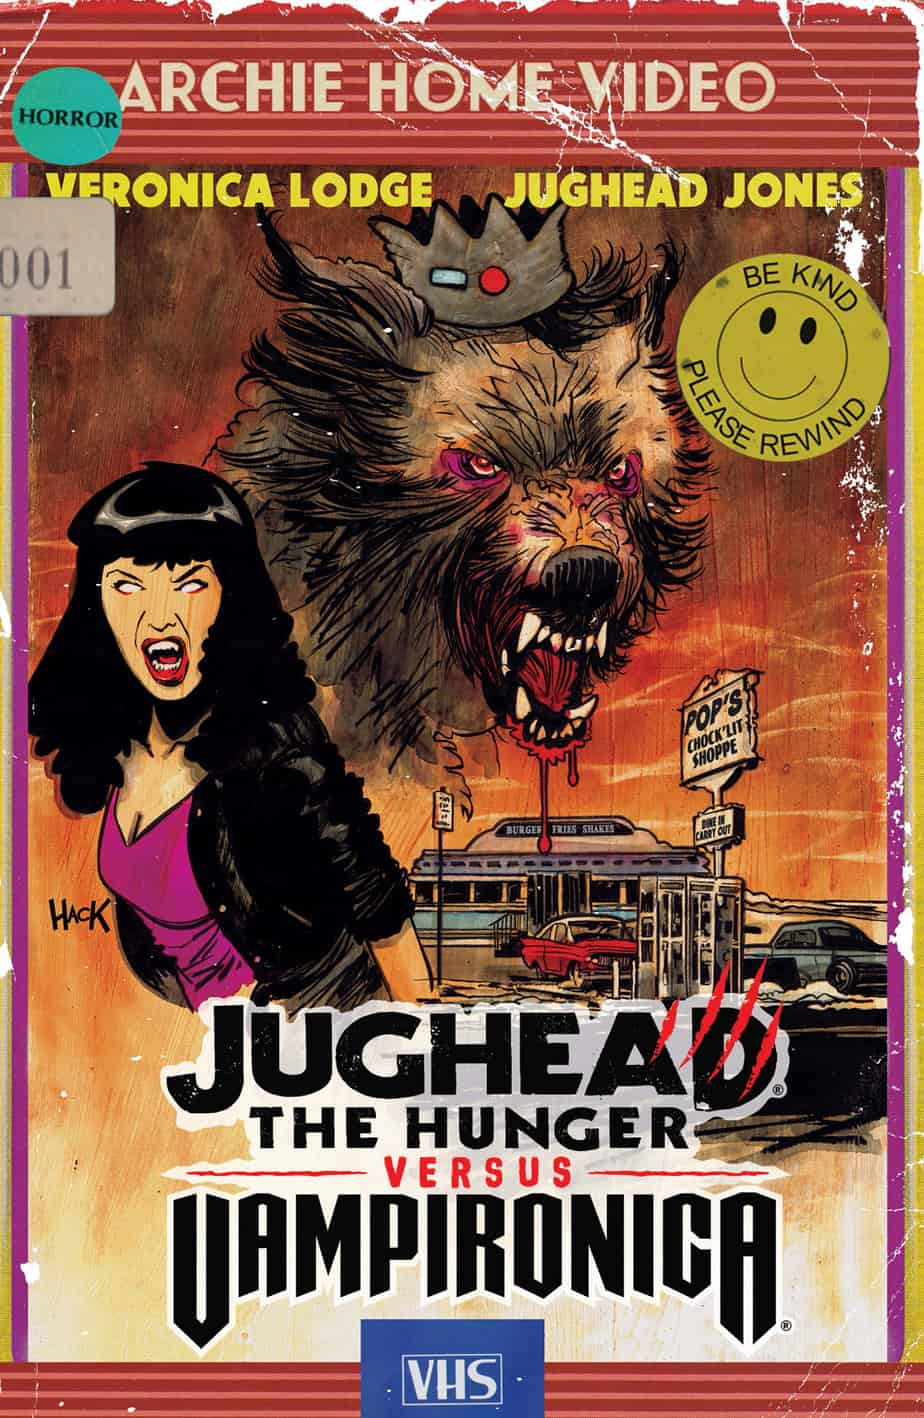 JUGHEAD: THE HUNGER VS. VAMPIRONICA #1 - Variant Cover by Robert Hack